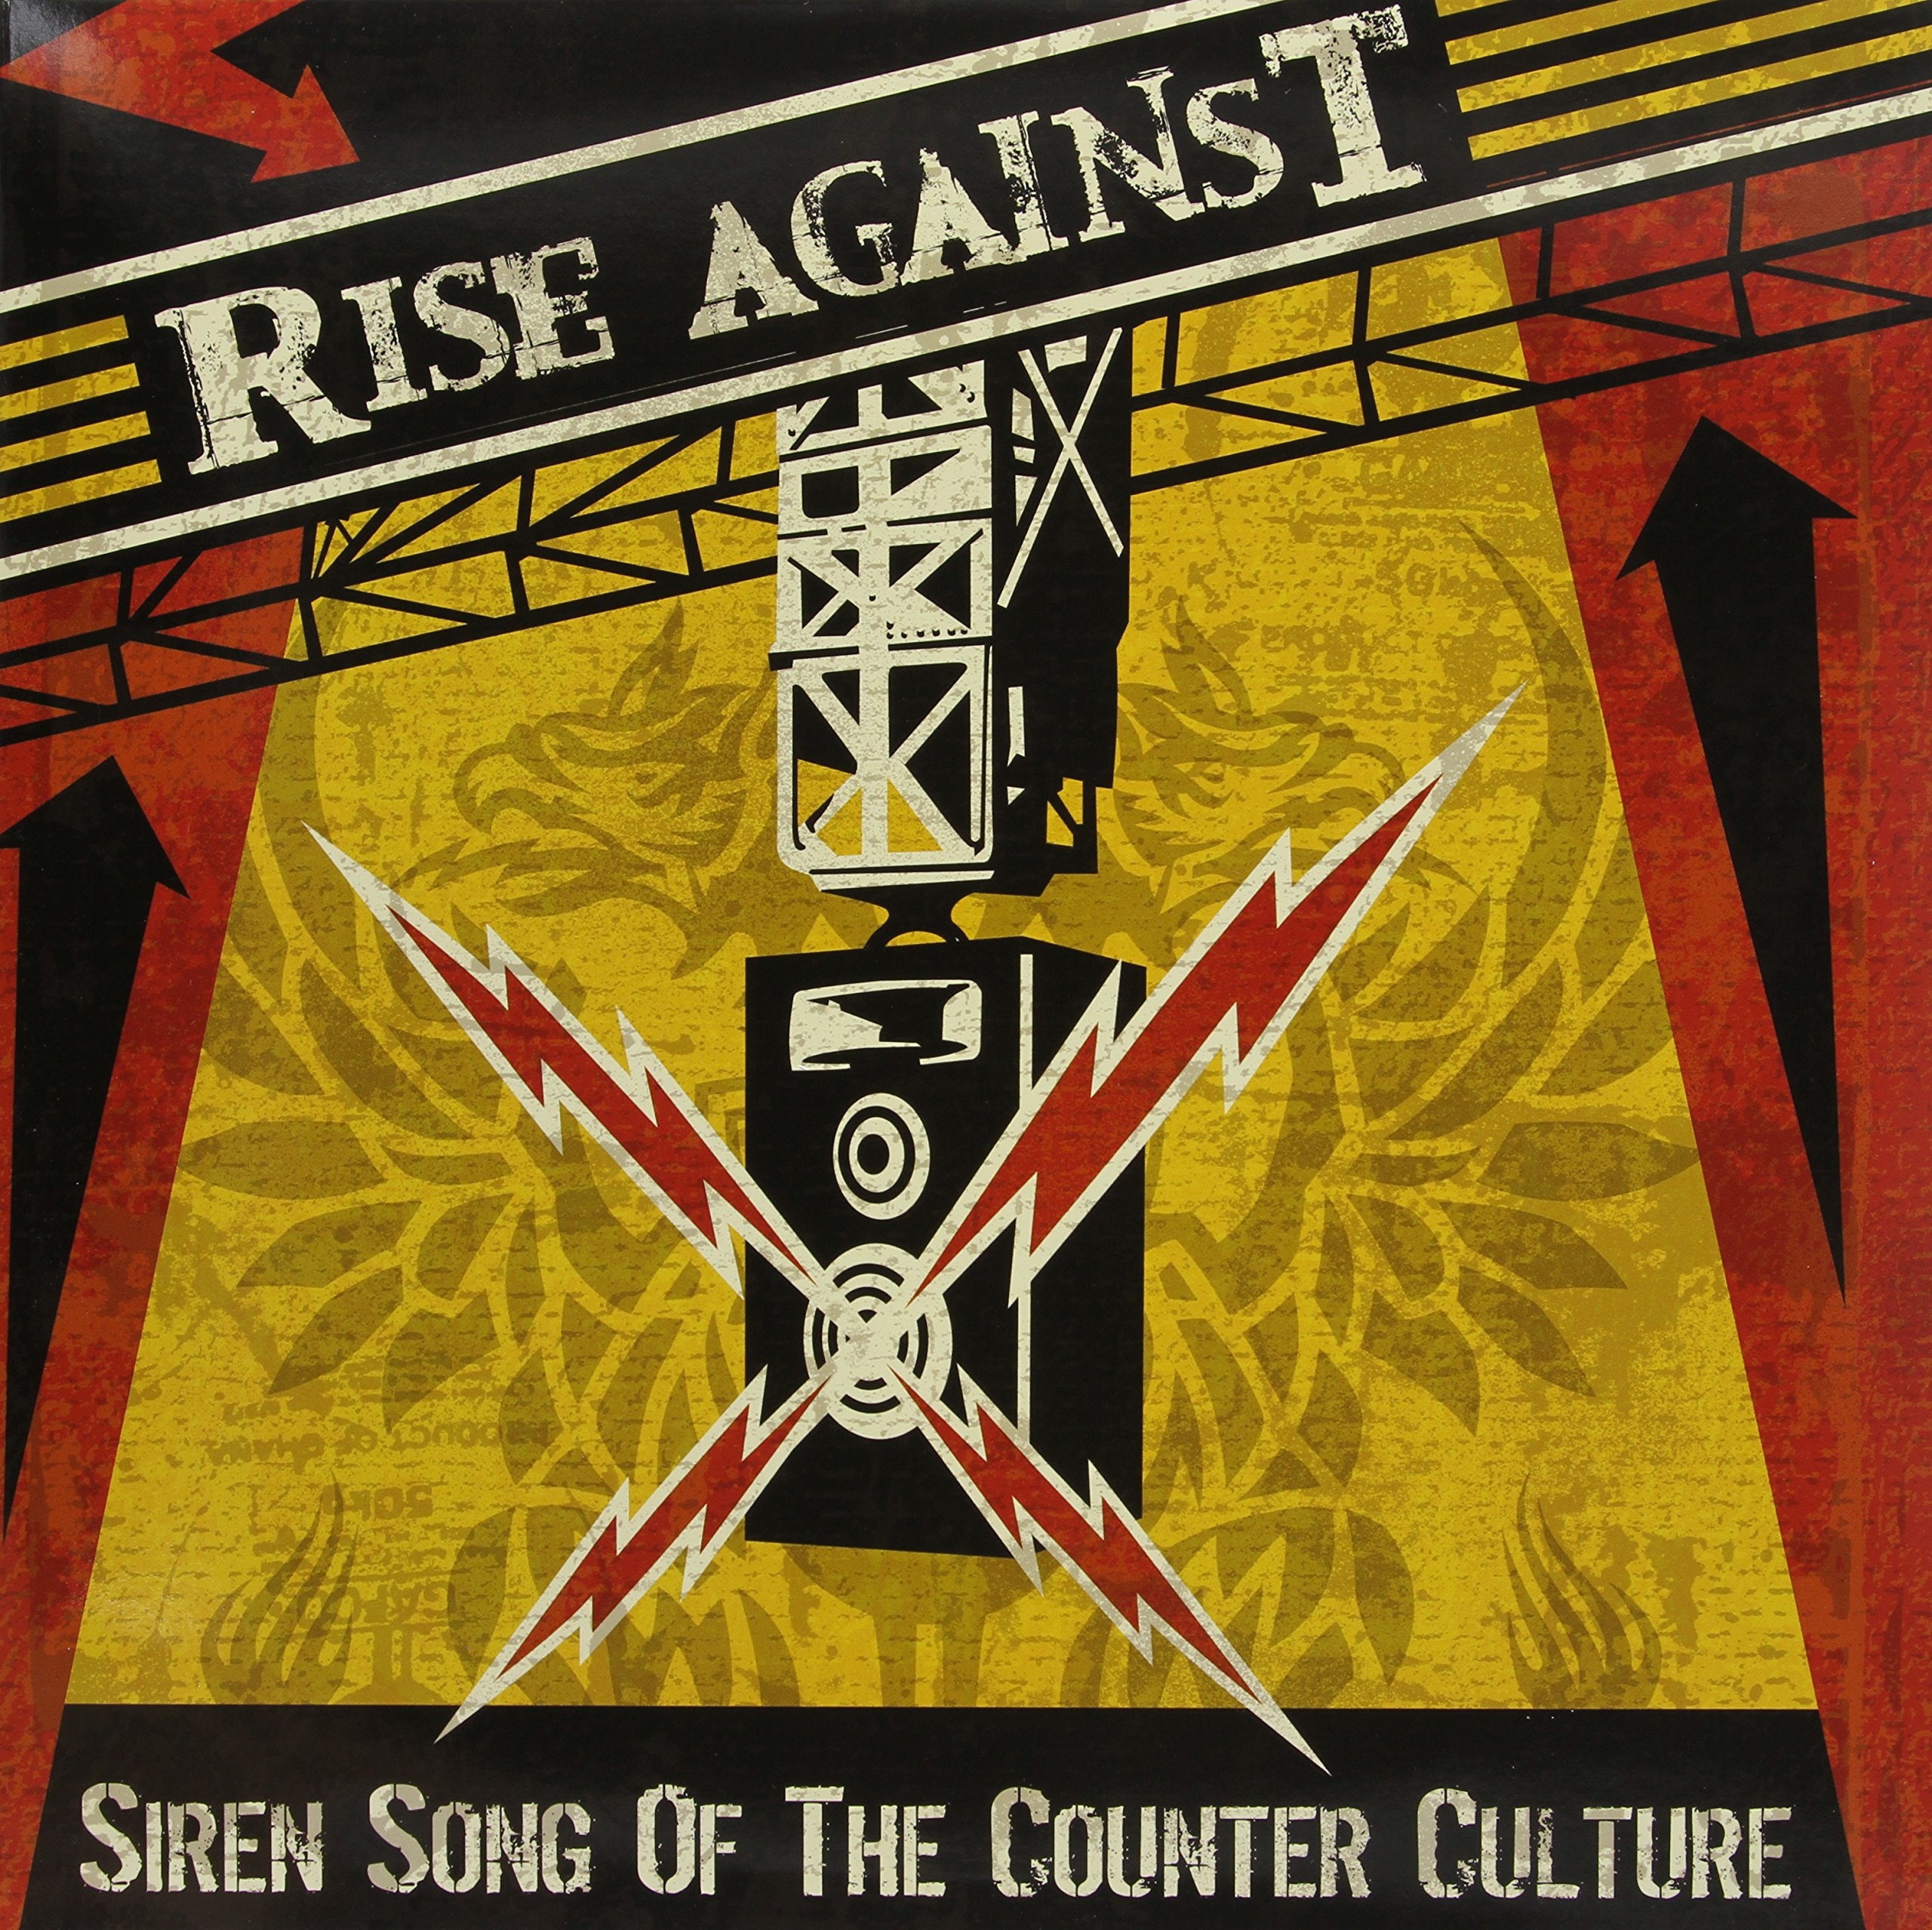 Siren Song of the Counter Culture [Vinyl]